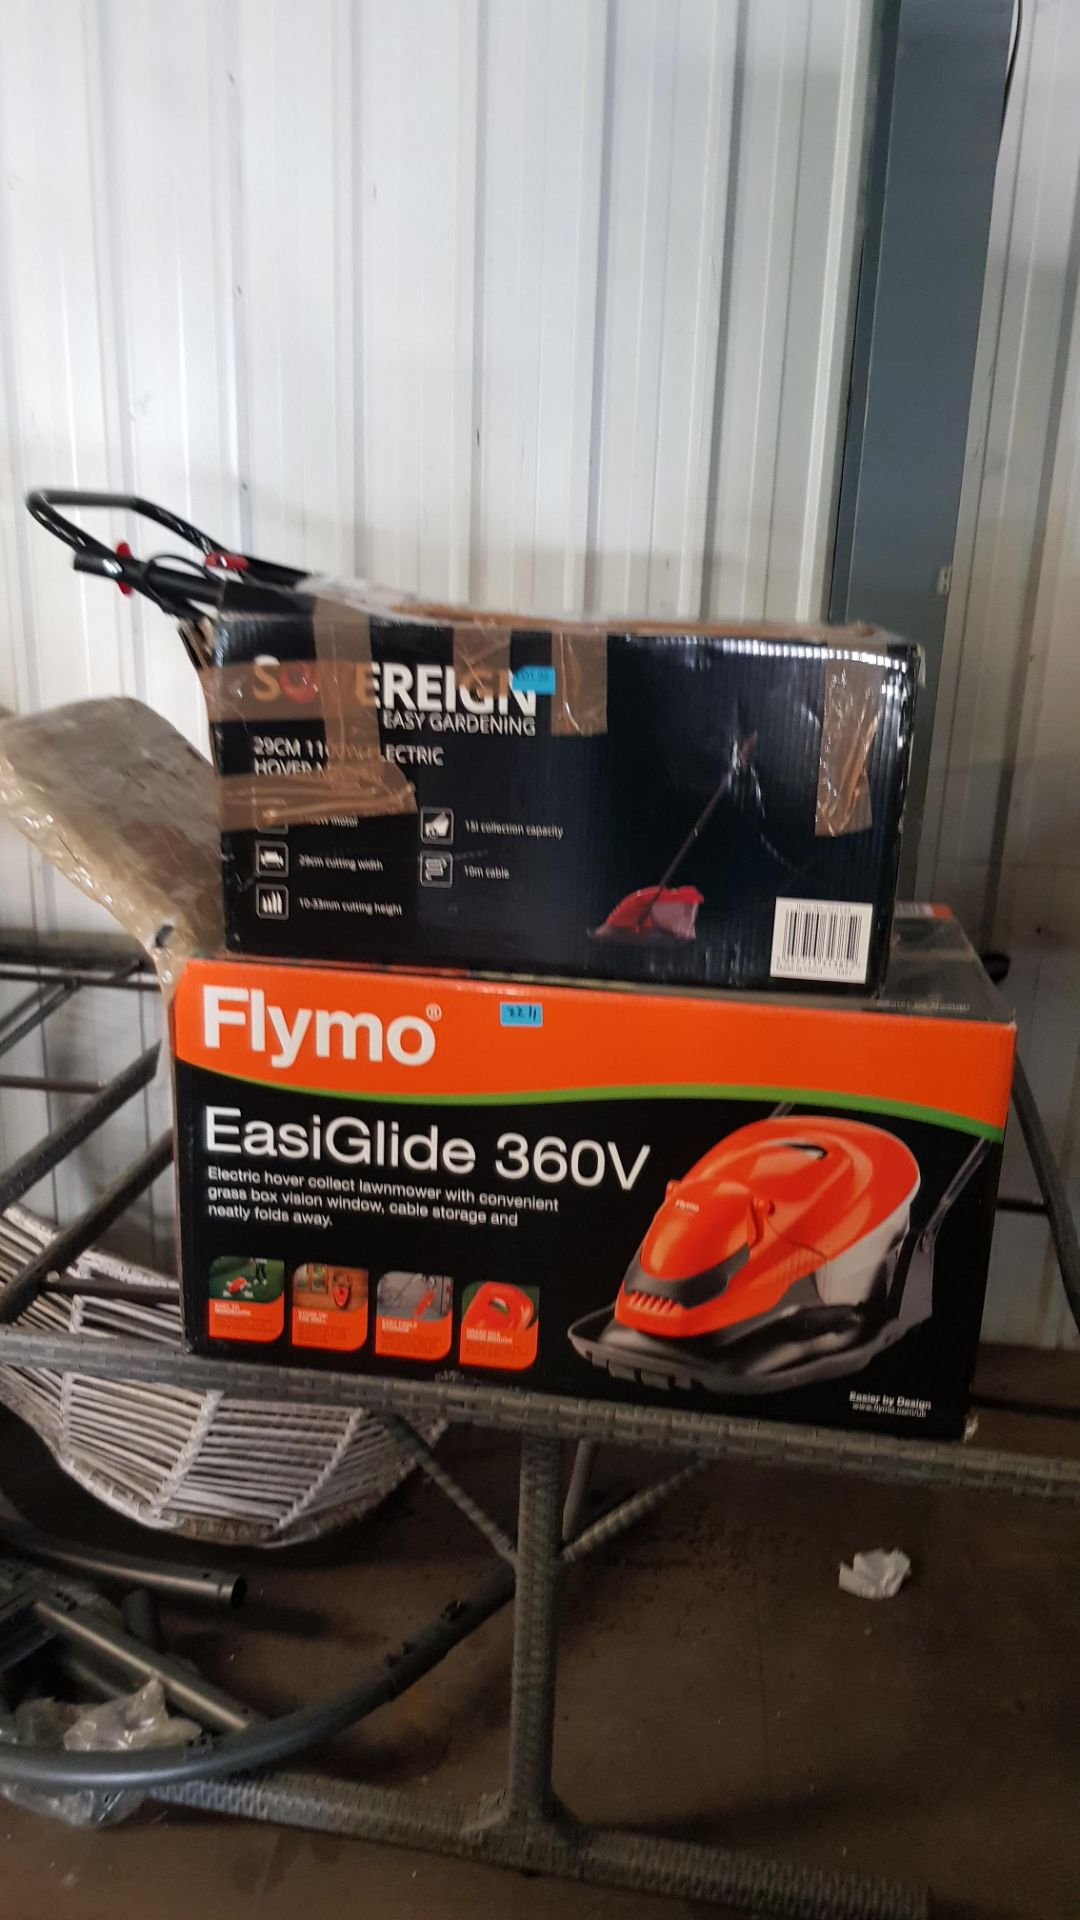 (P9) 2x Items. 1x Flymo EasiGlide 360V Electric Hover Collect Lawnmower RRP £139. 1x Sovereign 29c - Image 4 of 4